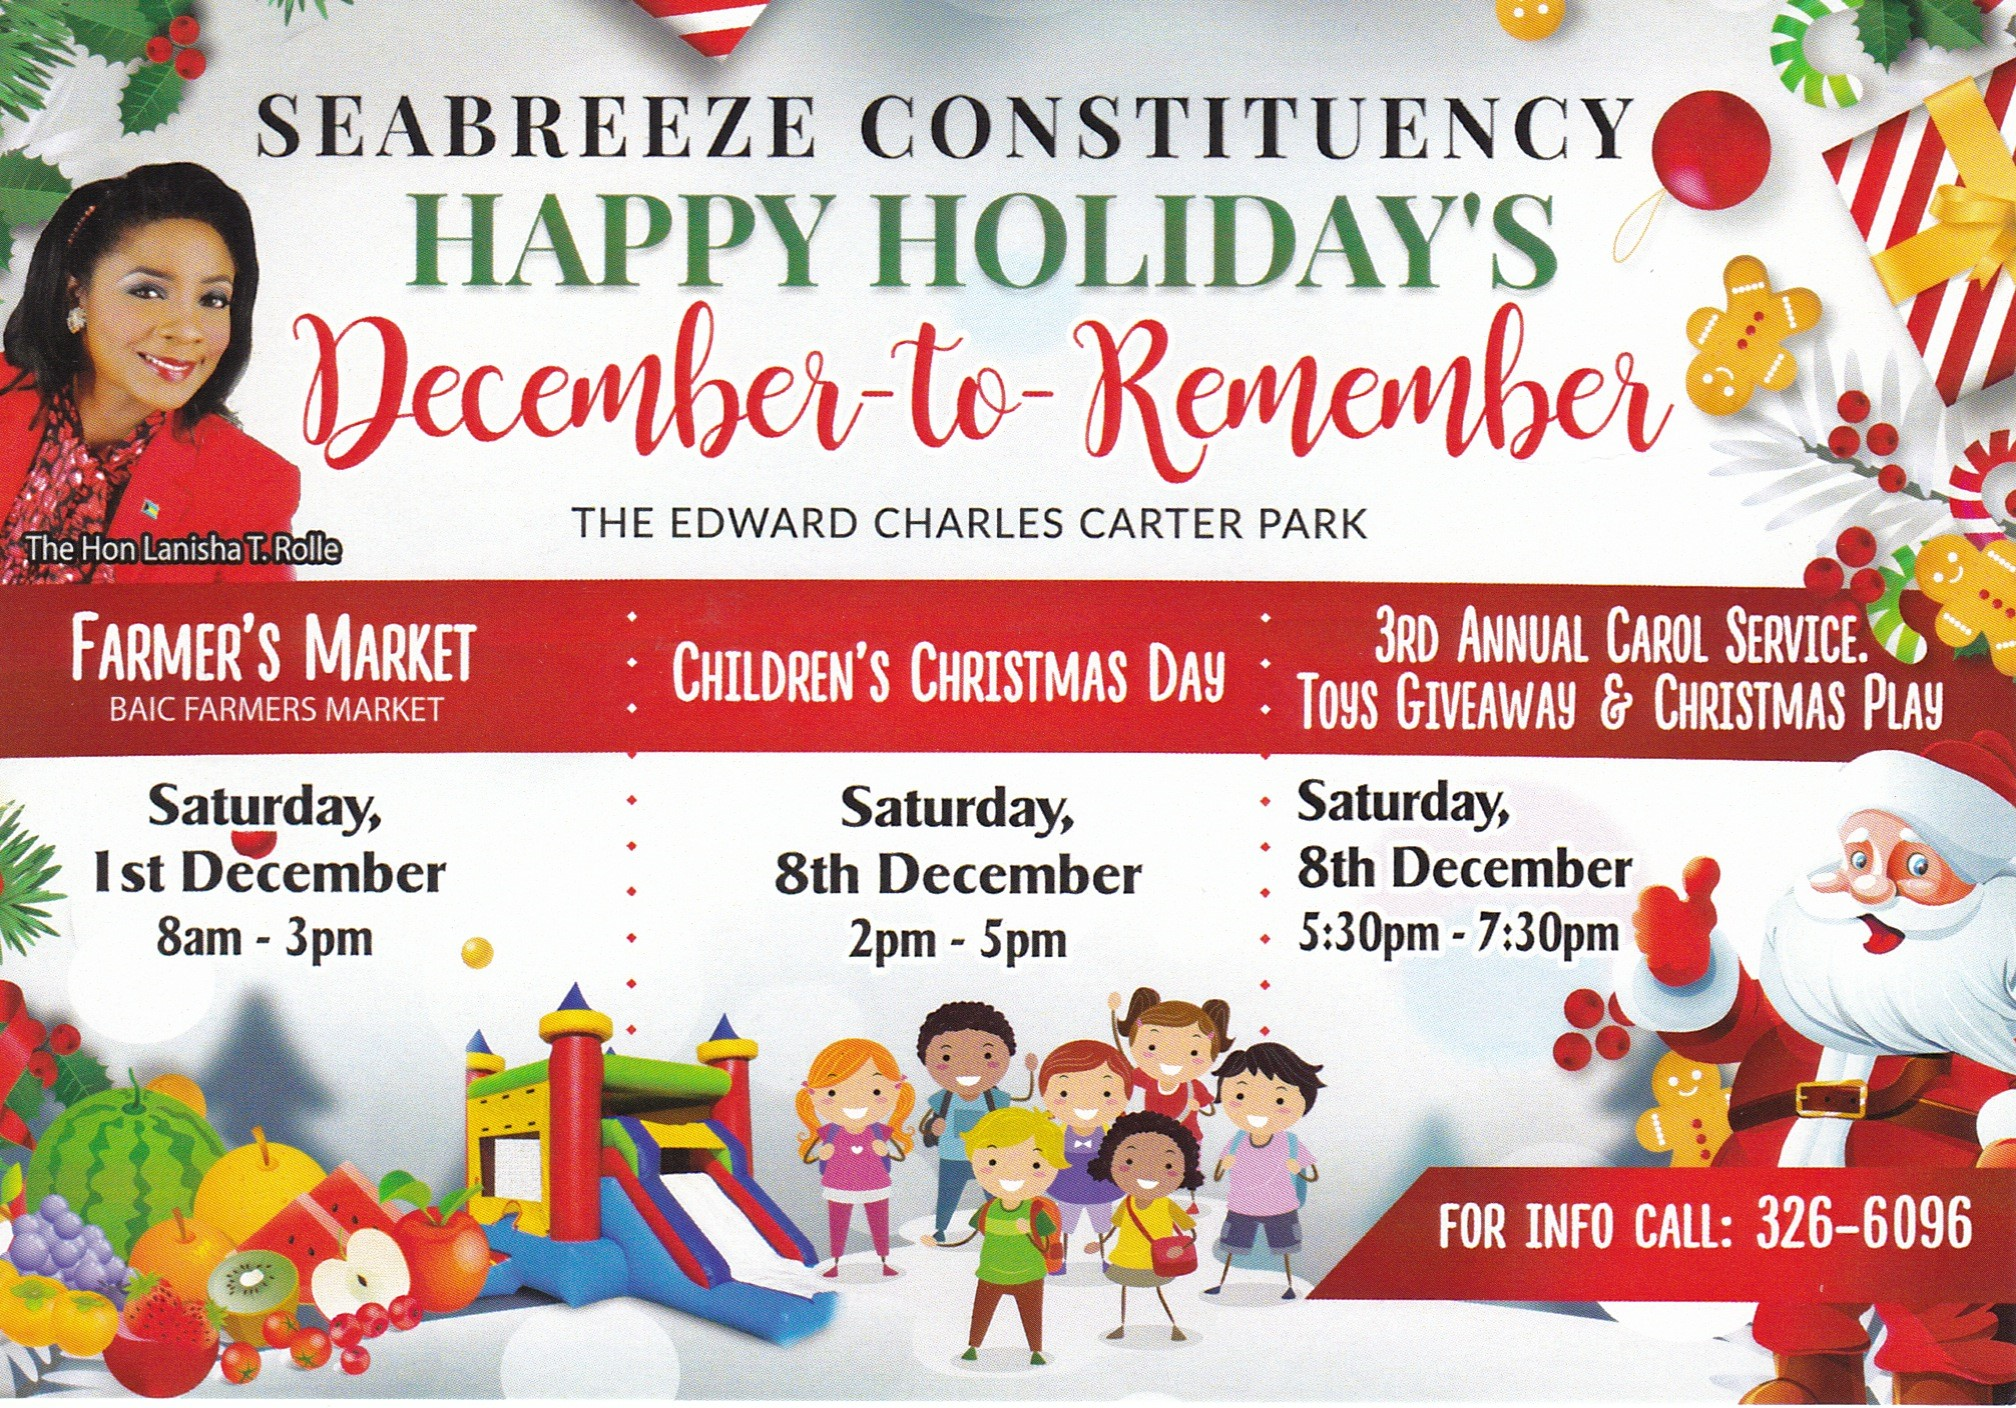 Seabreeze Constituency: Happy holidays | December To Remember